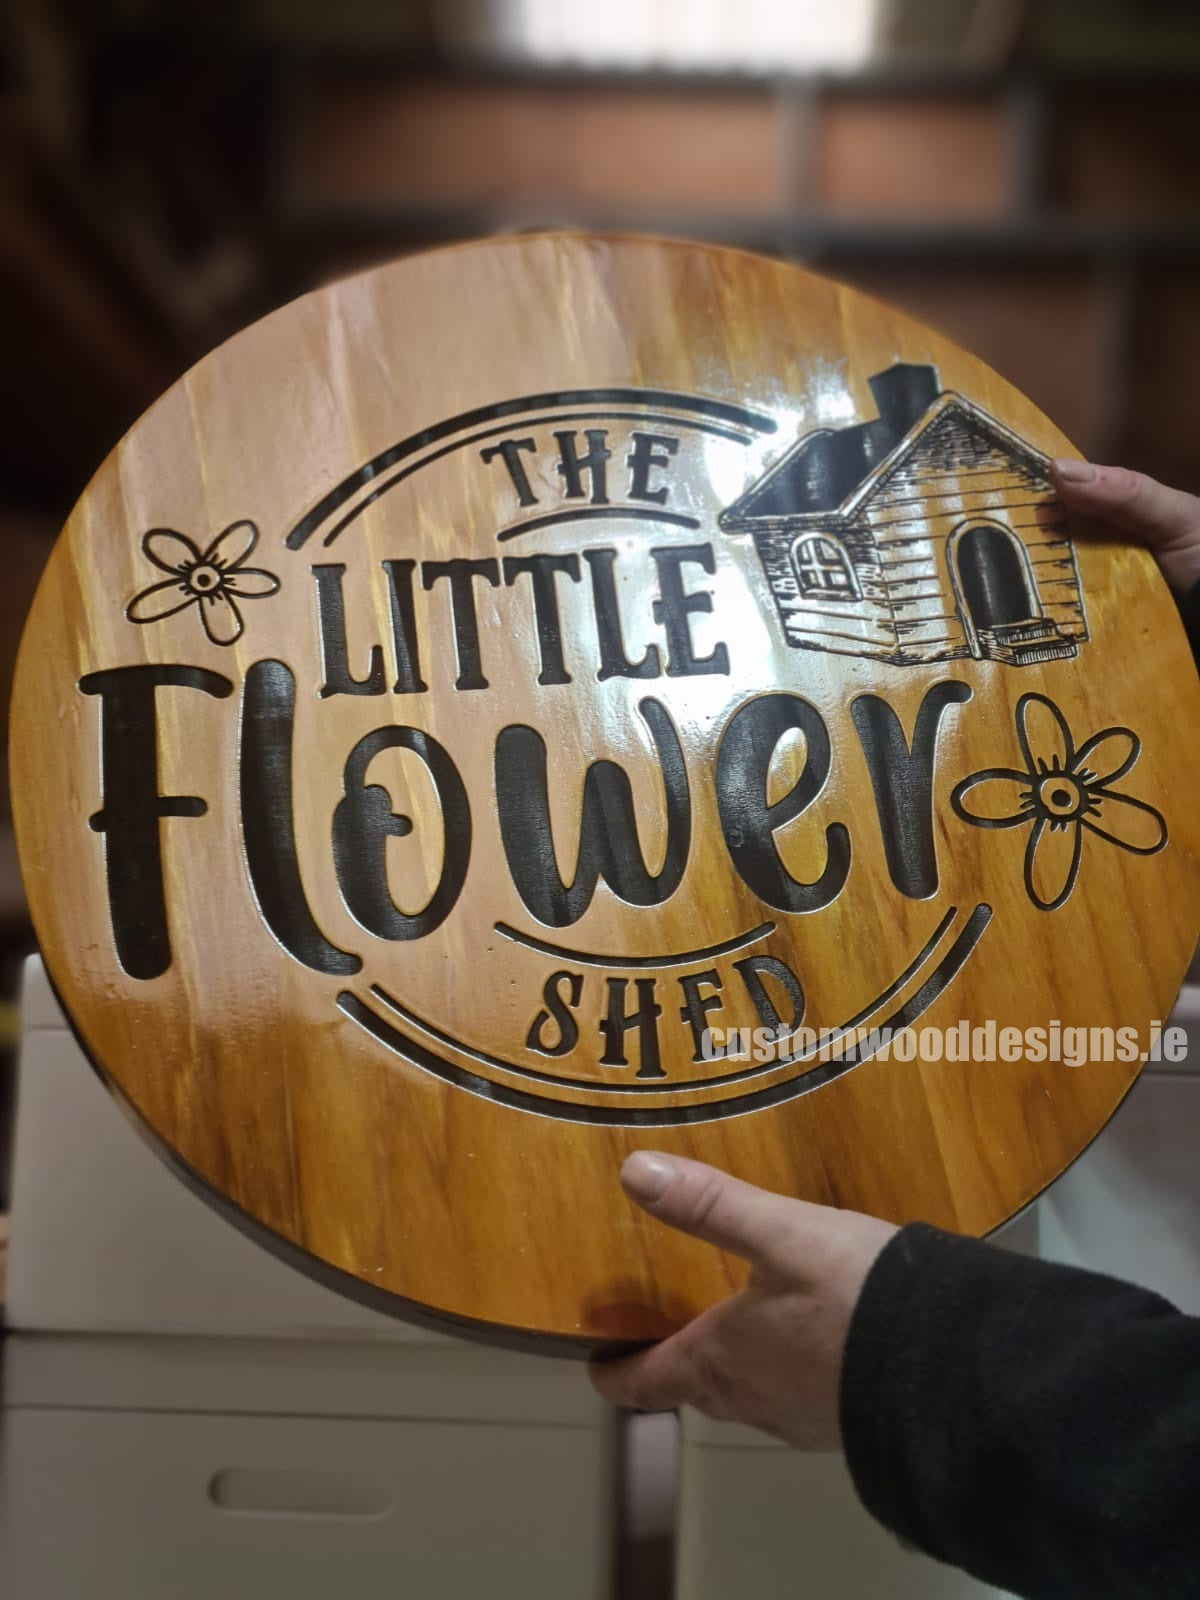 Custom Wood Designs Business signs ireland wooden signs ireland business logos wooden signs eco signs business (10)